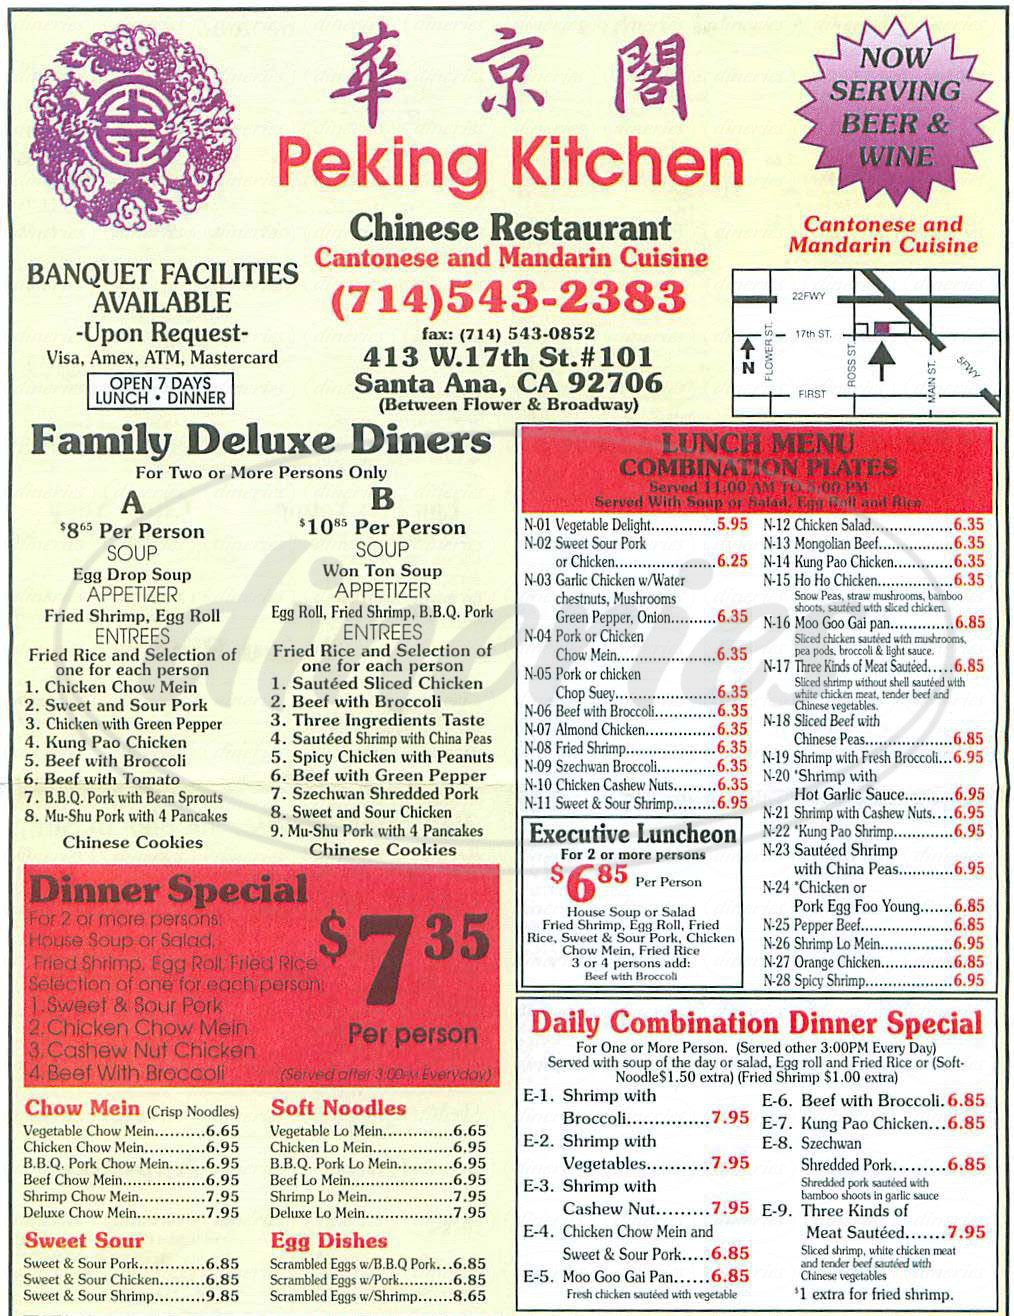 Attrayant Menu For Peking Kitchen